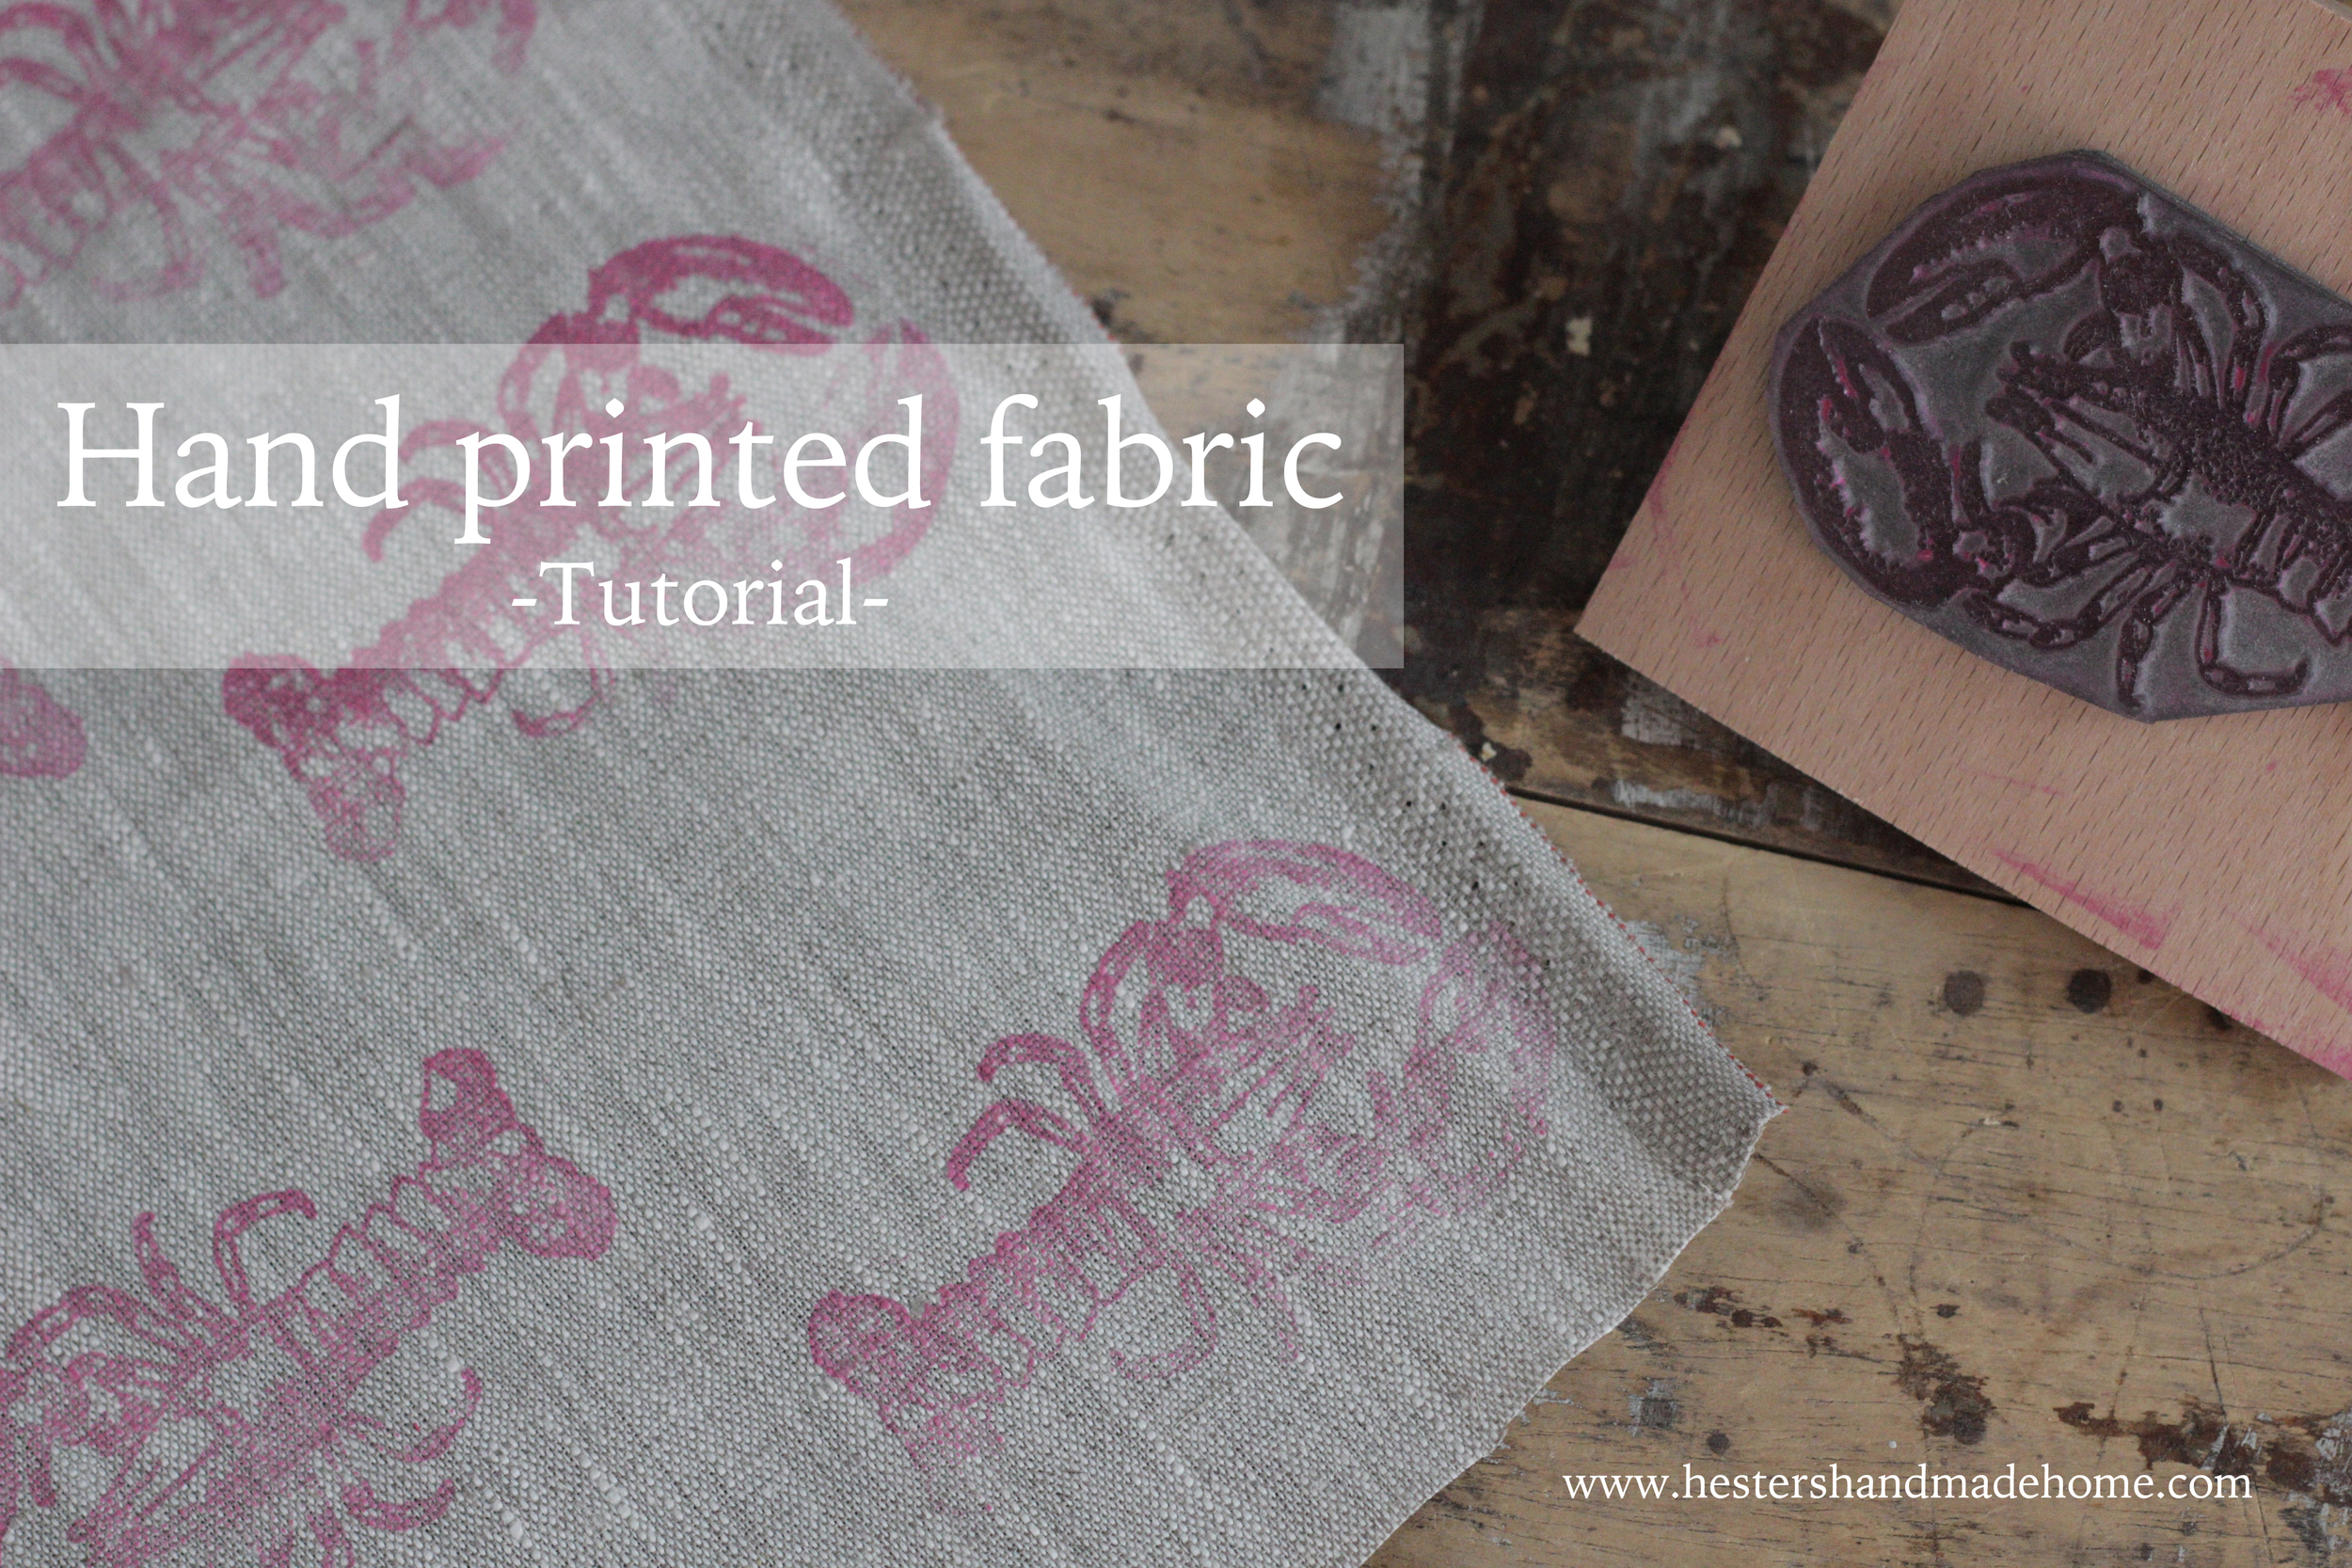 hand printed fabric tutorial by hester's handmade home